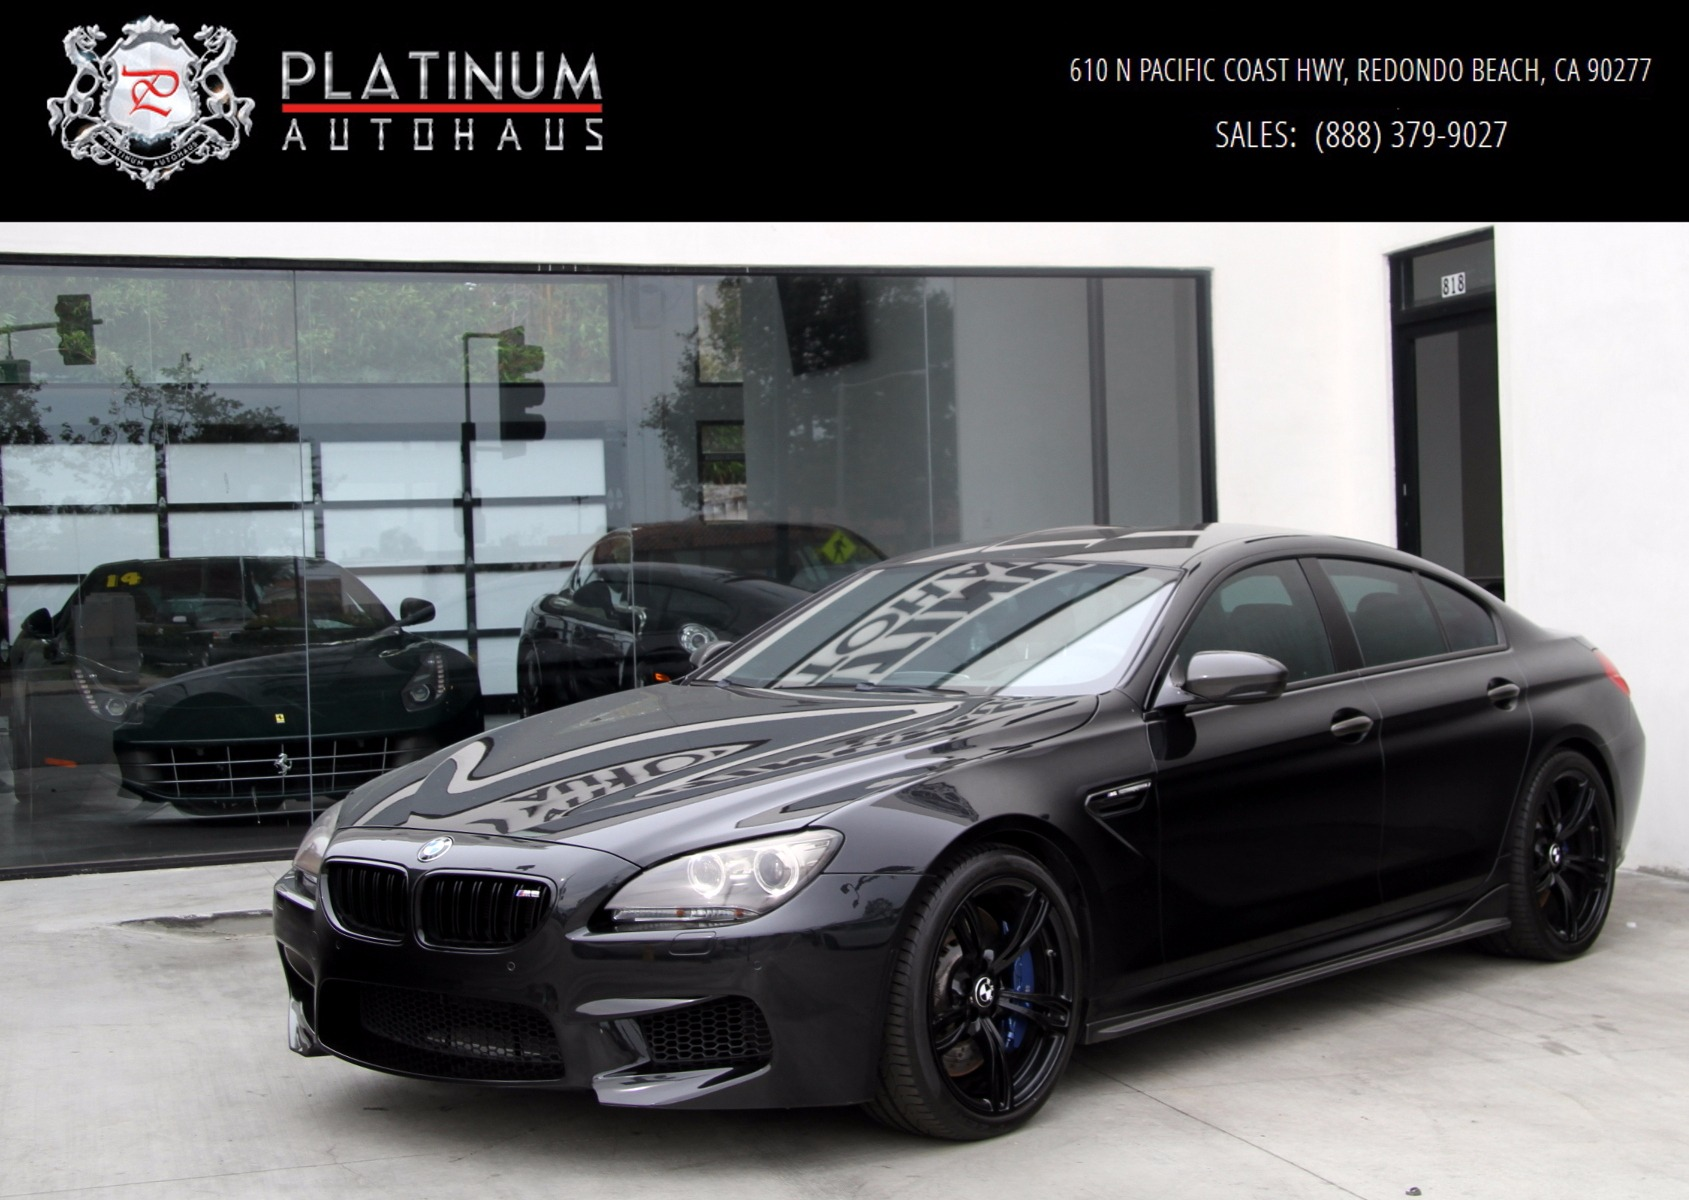 2014 Bmw M6 Gran Coupe Stock 5581 For Sale Near Redondo Beach Ca Ca Bmw Dealer